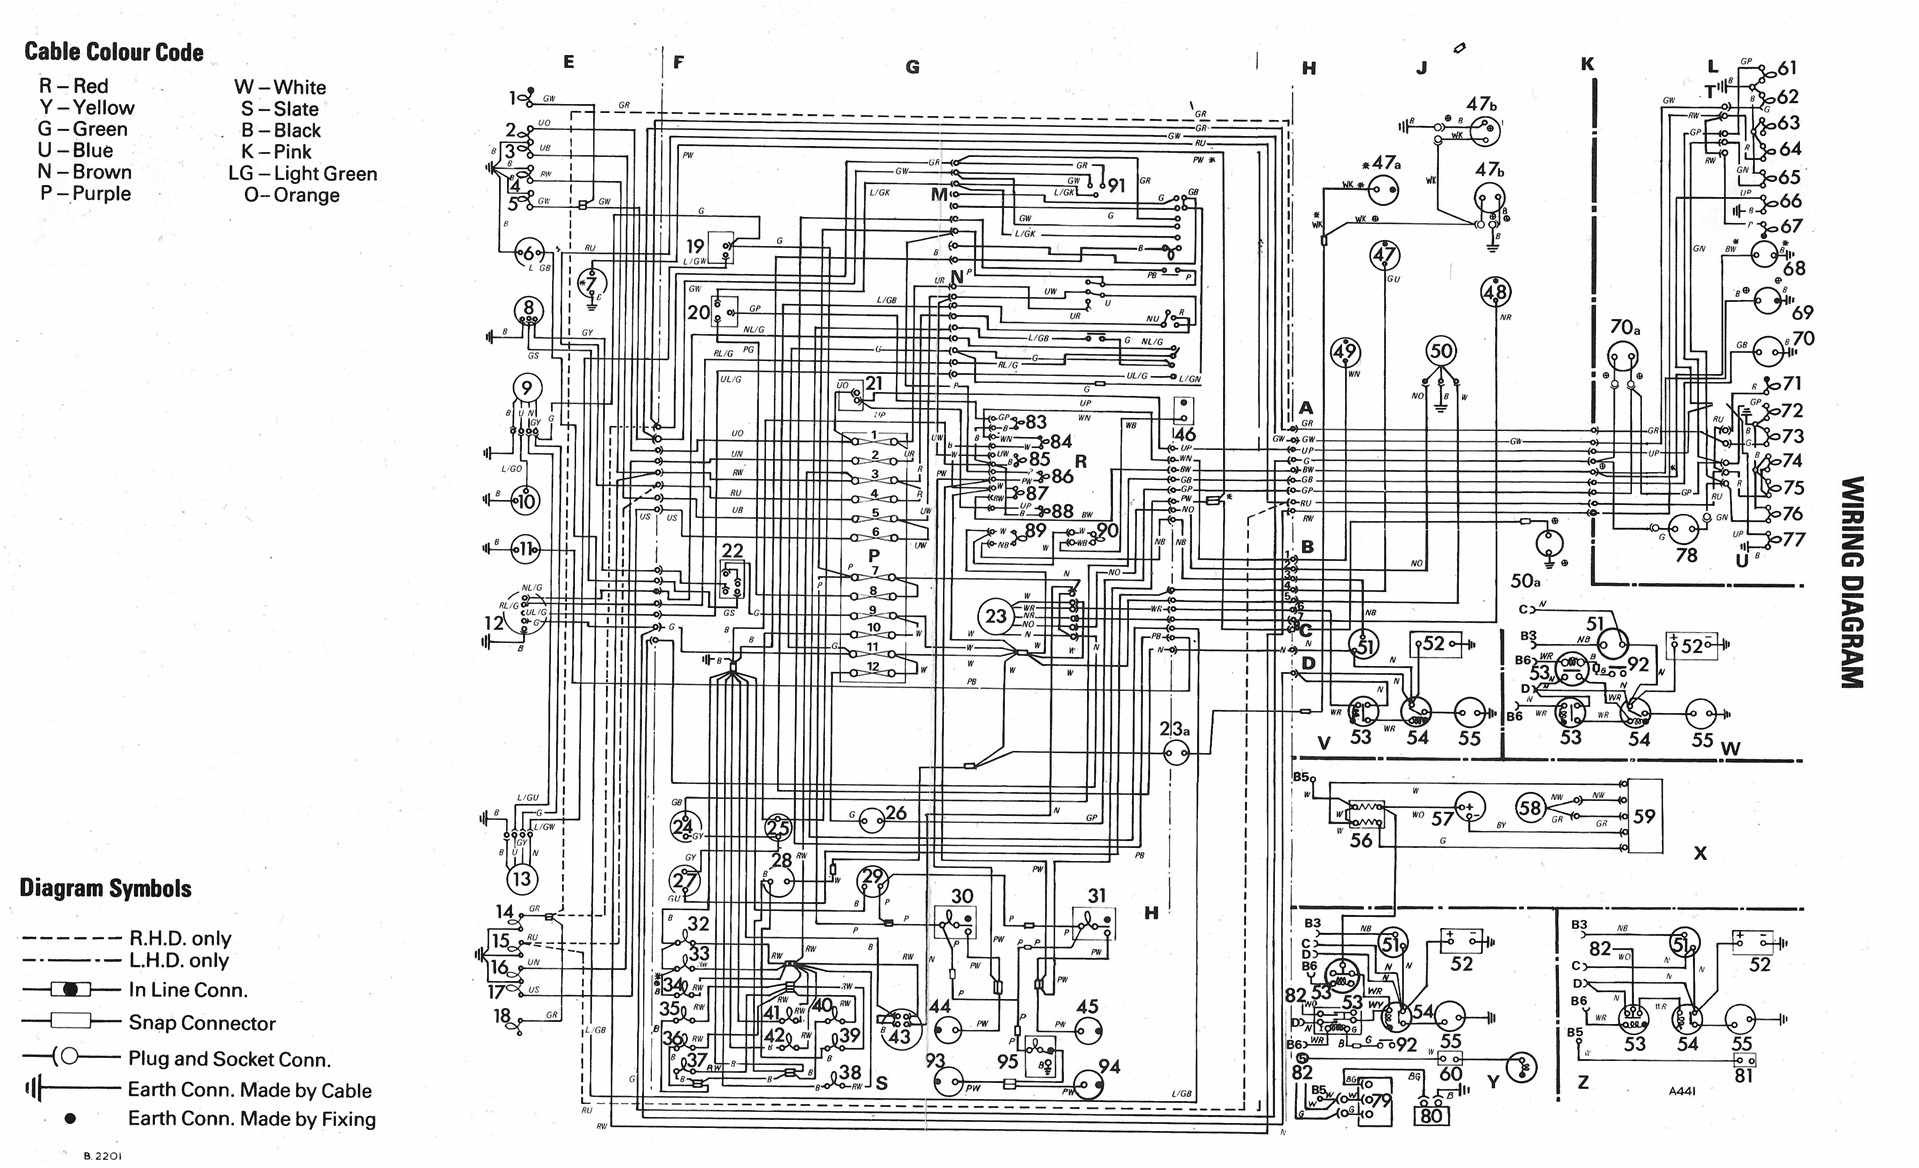 hight resolution of vw golf engine diagram vw gti wiring diagram wiring diagrams vw golf radio wiring diagram vw